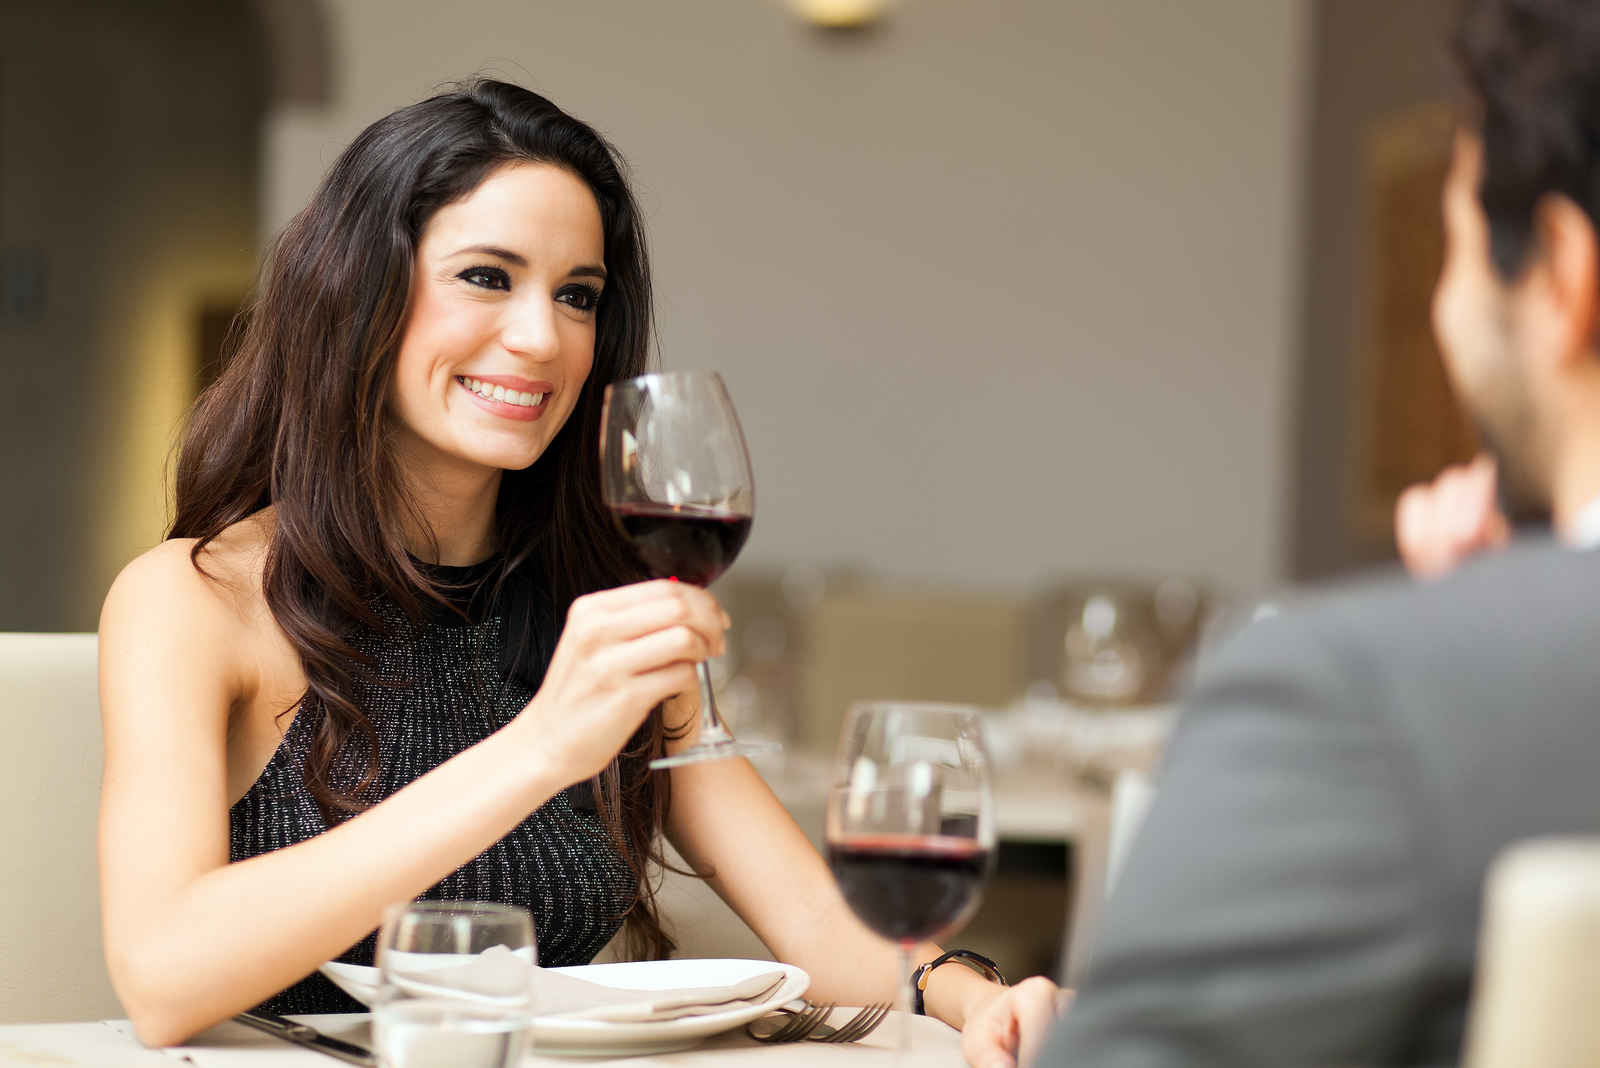 a black-haired woman holding a glass of wine and talking to a man